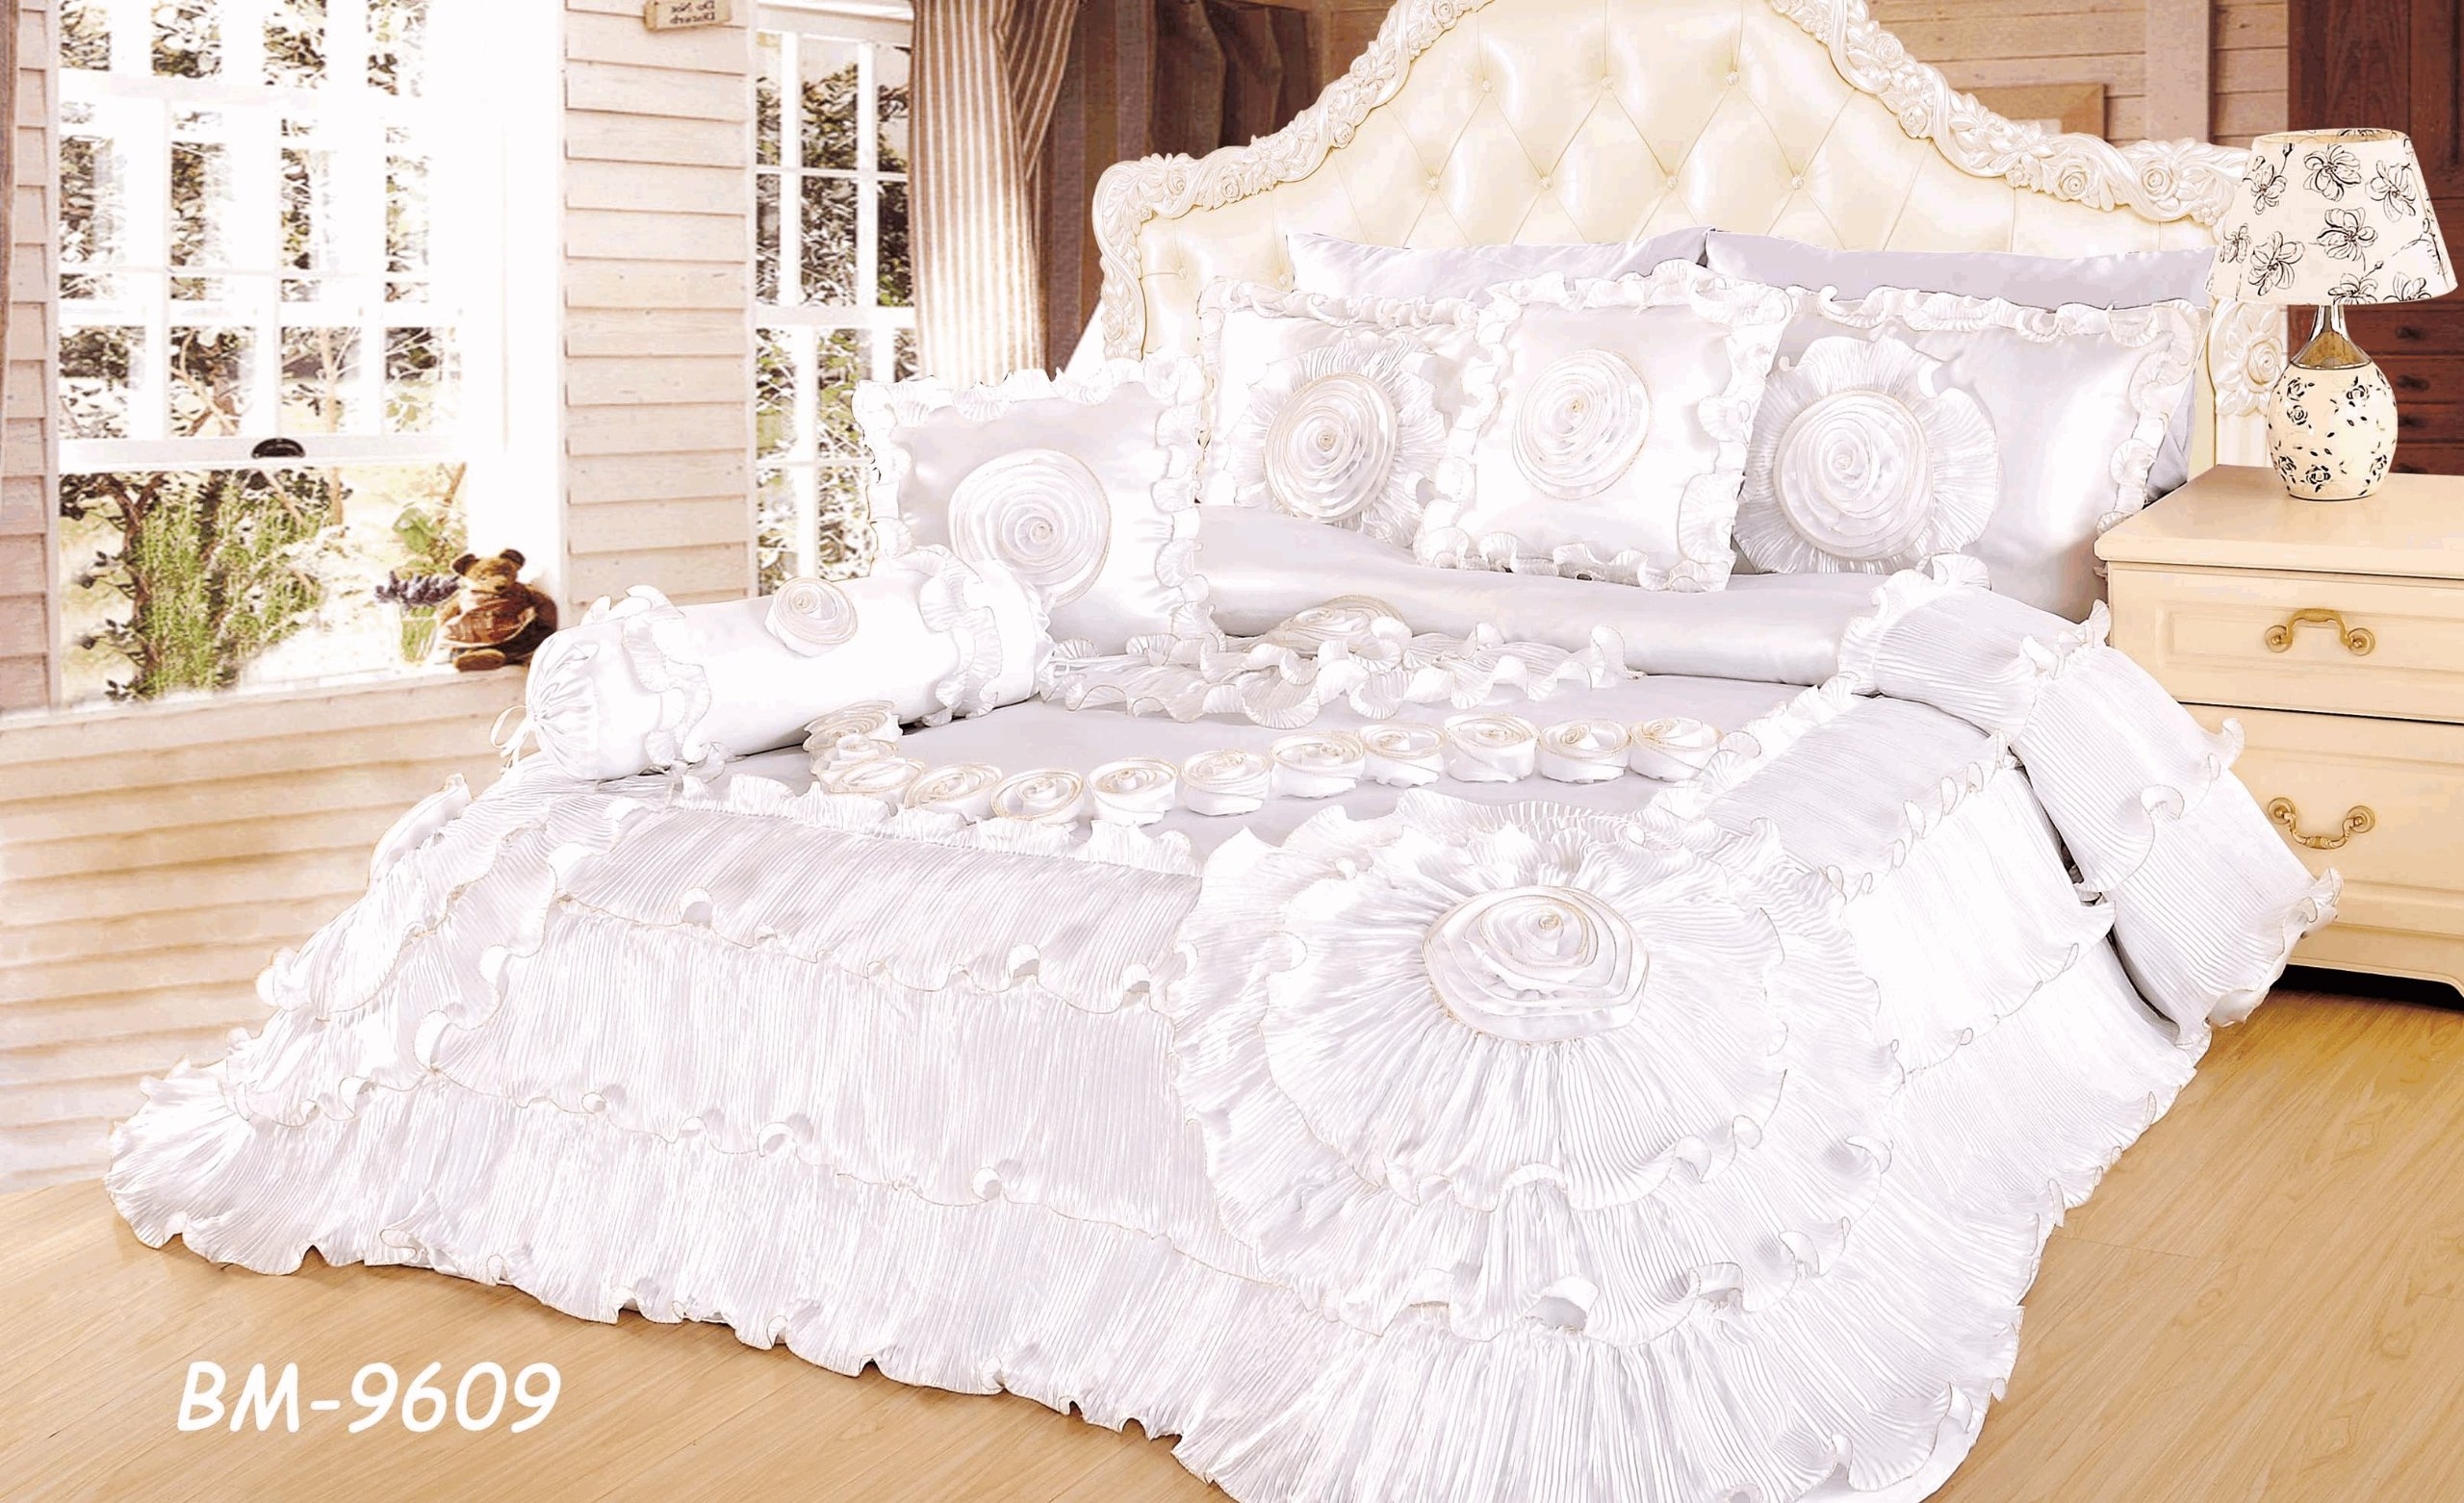 Tache Home Fashion BM9609-Q 6 Piece Wedding Chamber Comforter Set, Queen, White by Tache Home Fashion